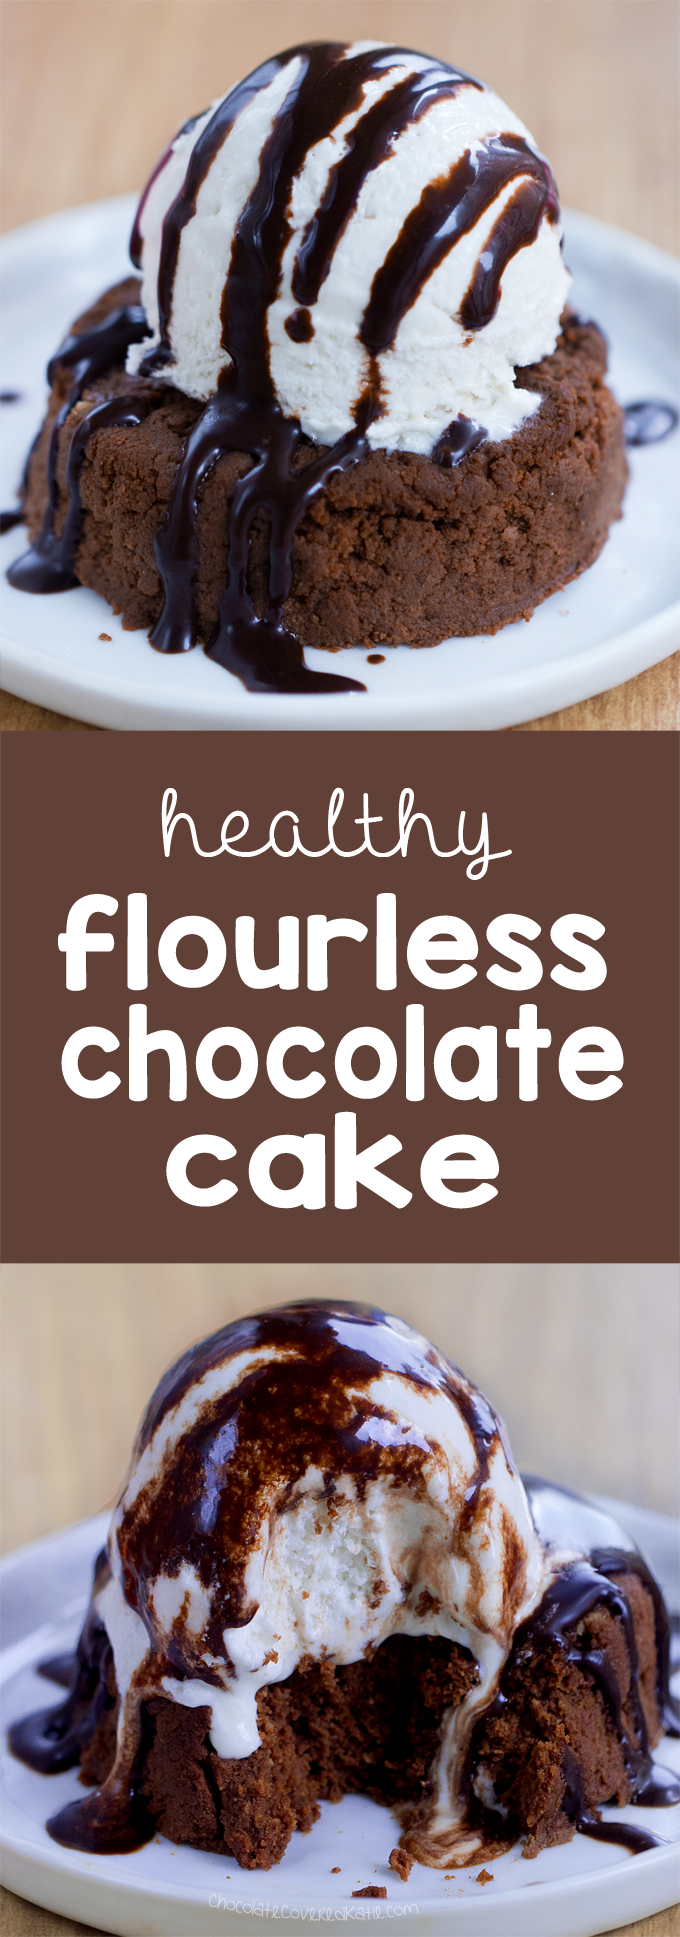 Flourless Chocolate Cake Made With Coconut Water